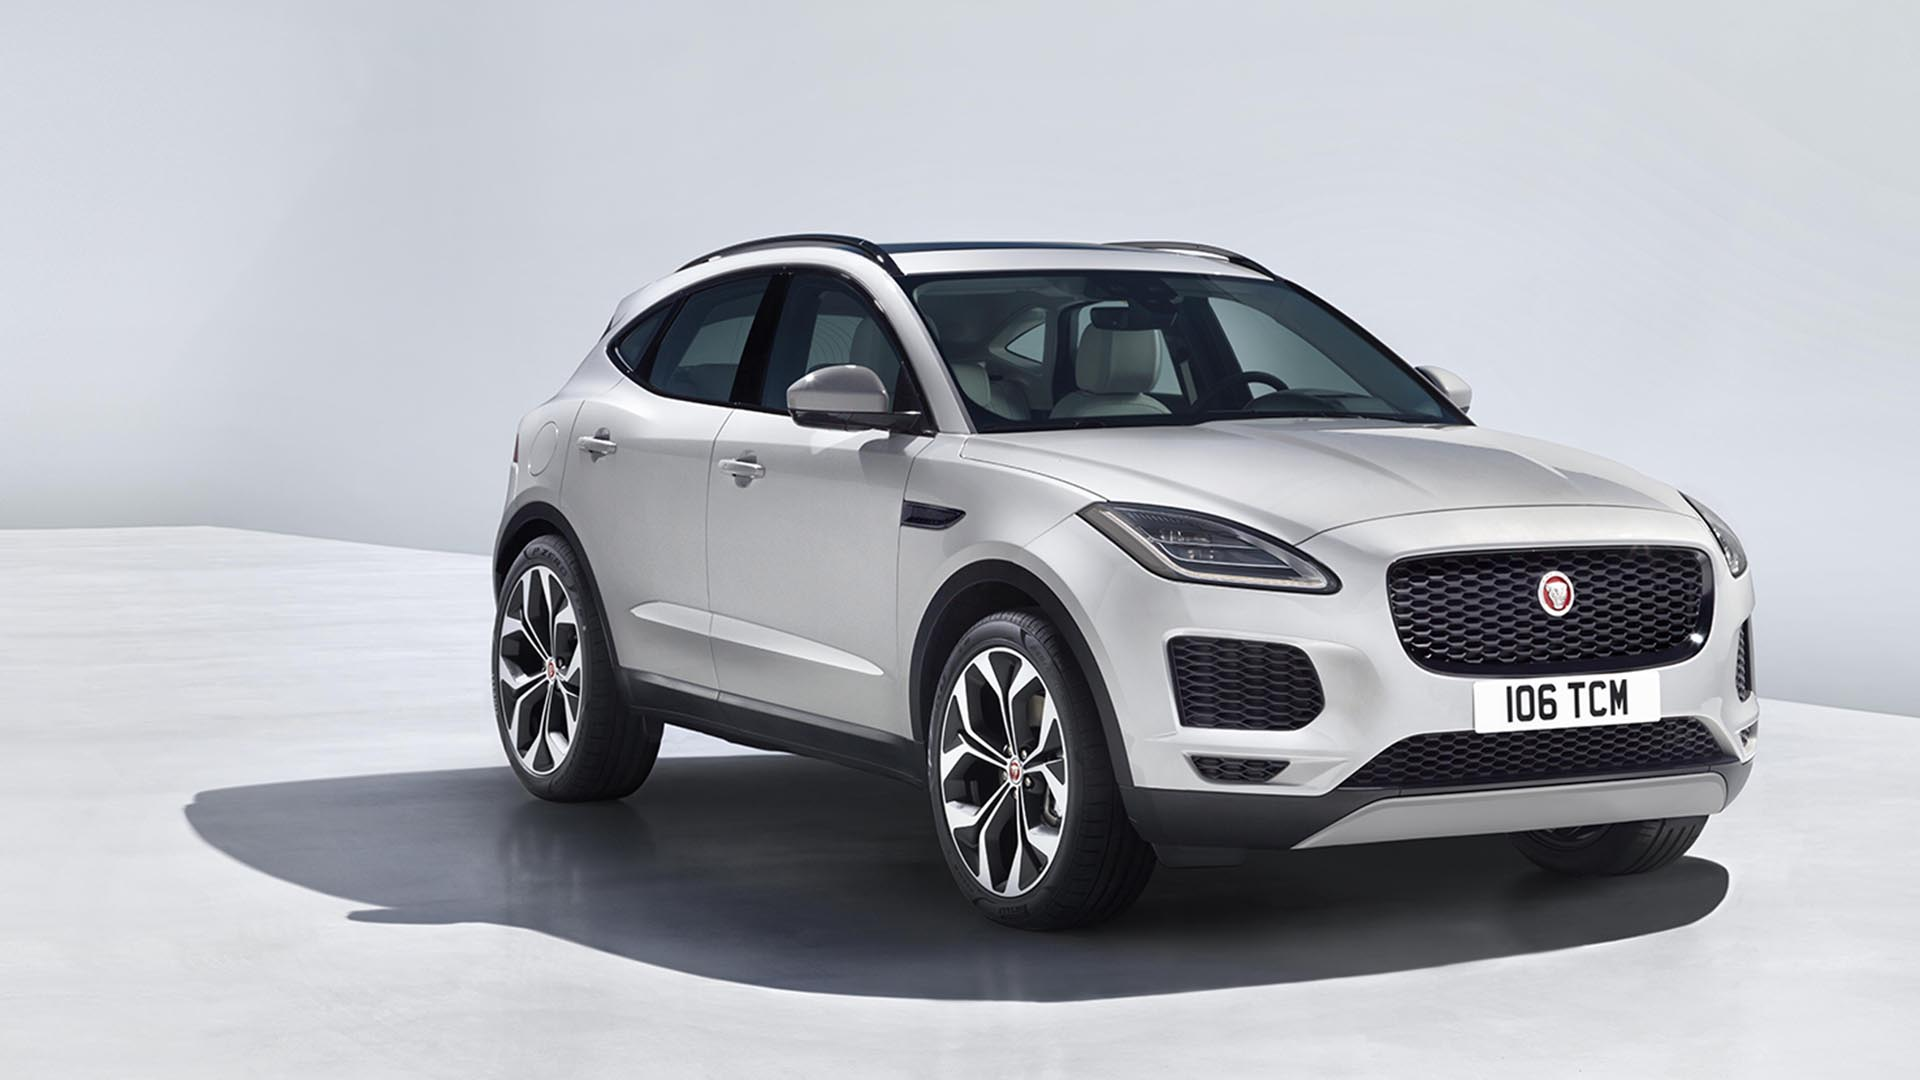 Jaguar E-Pace sets new barrel roll record